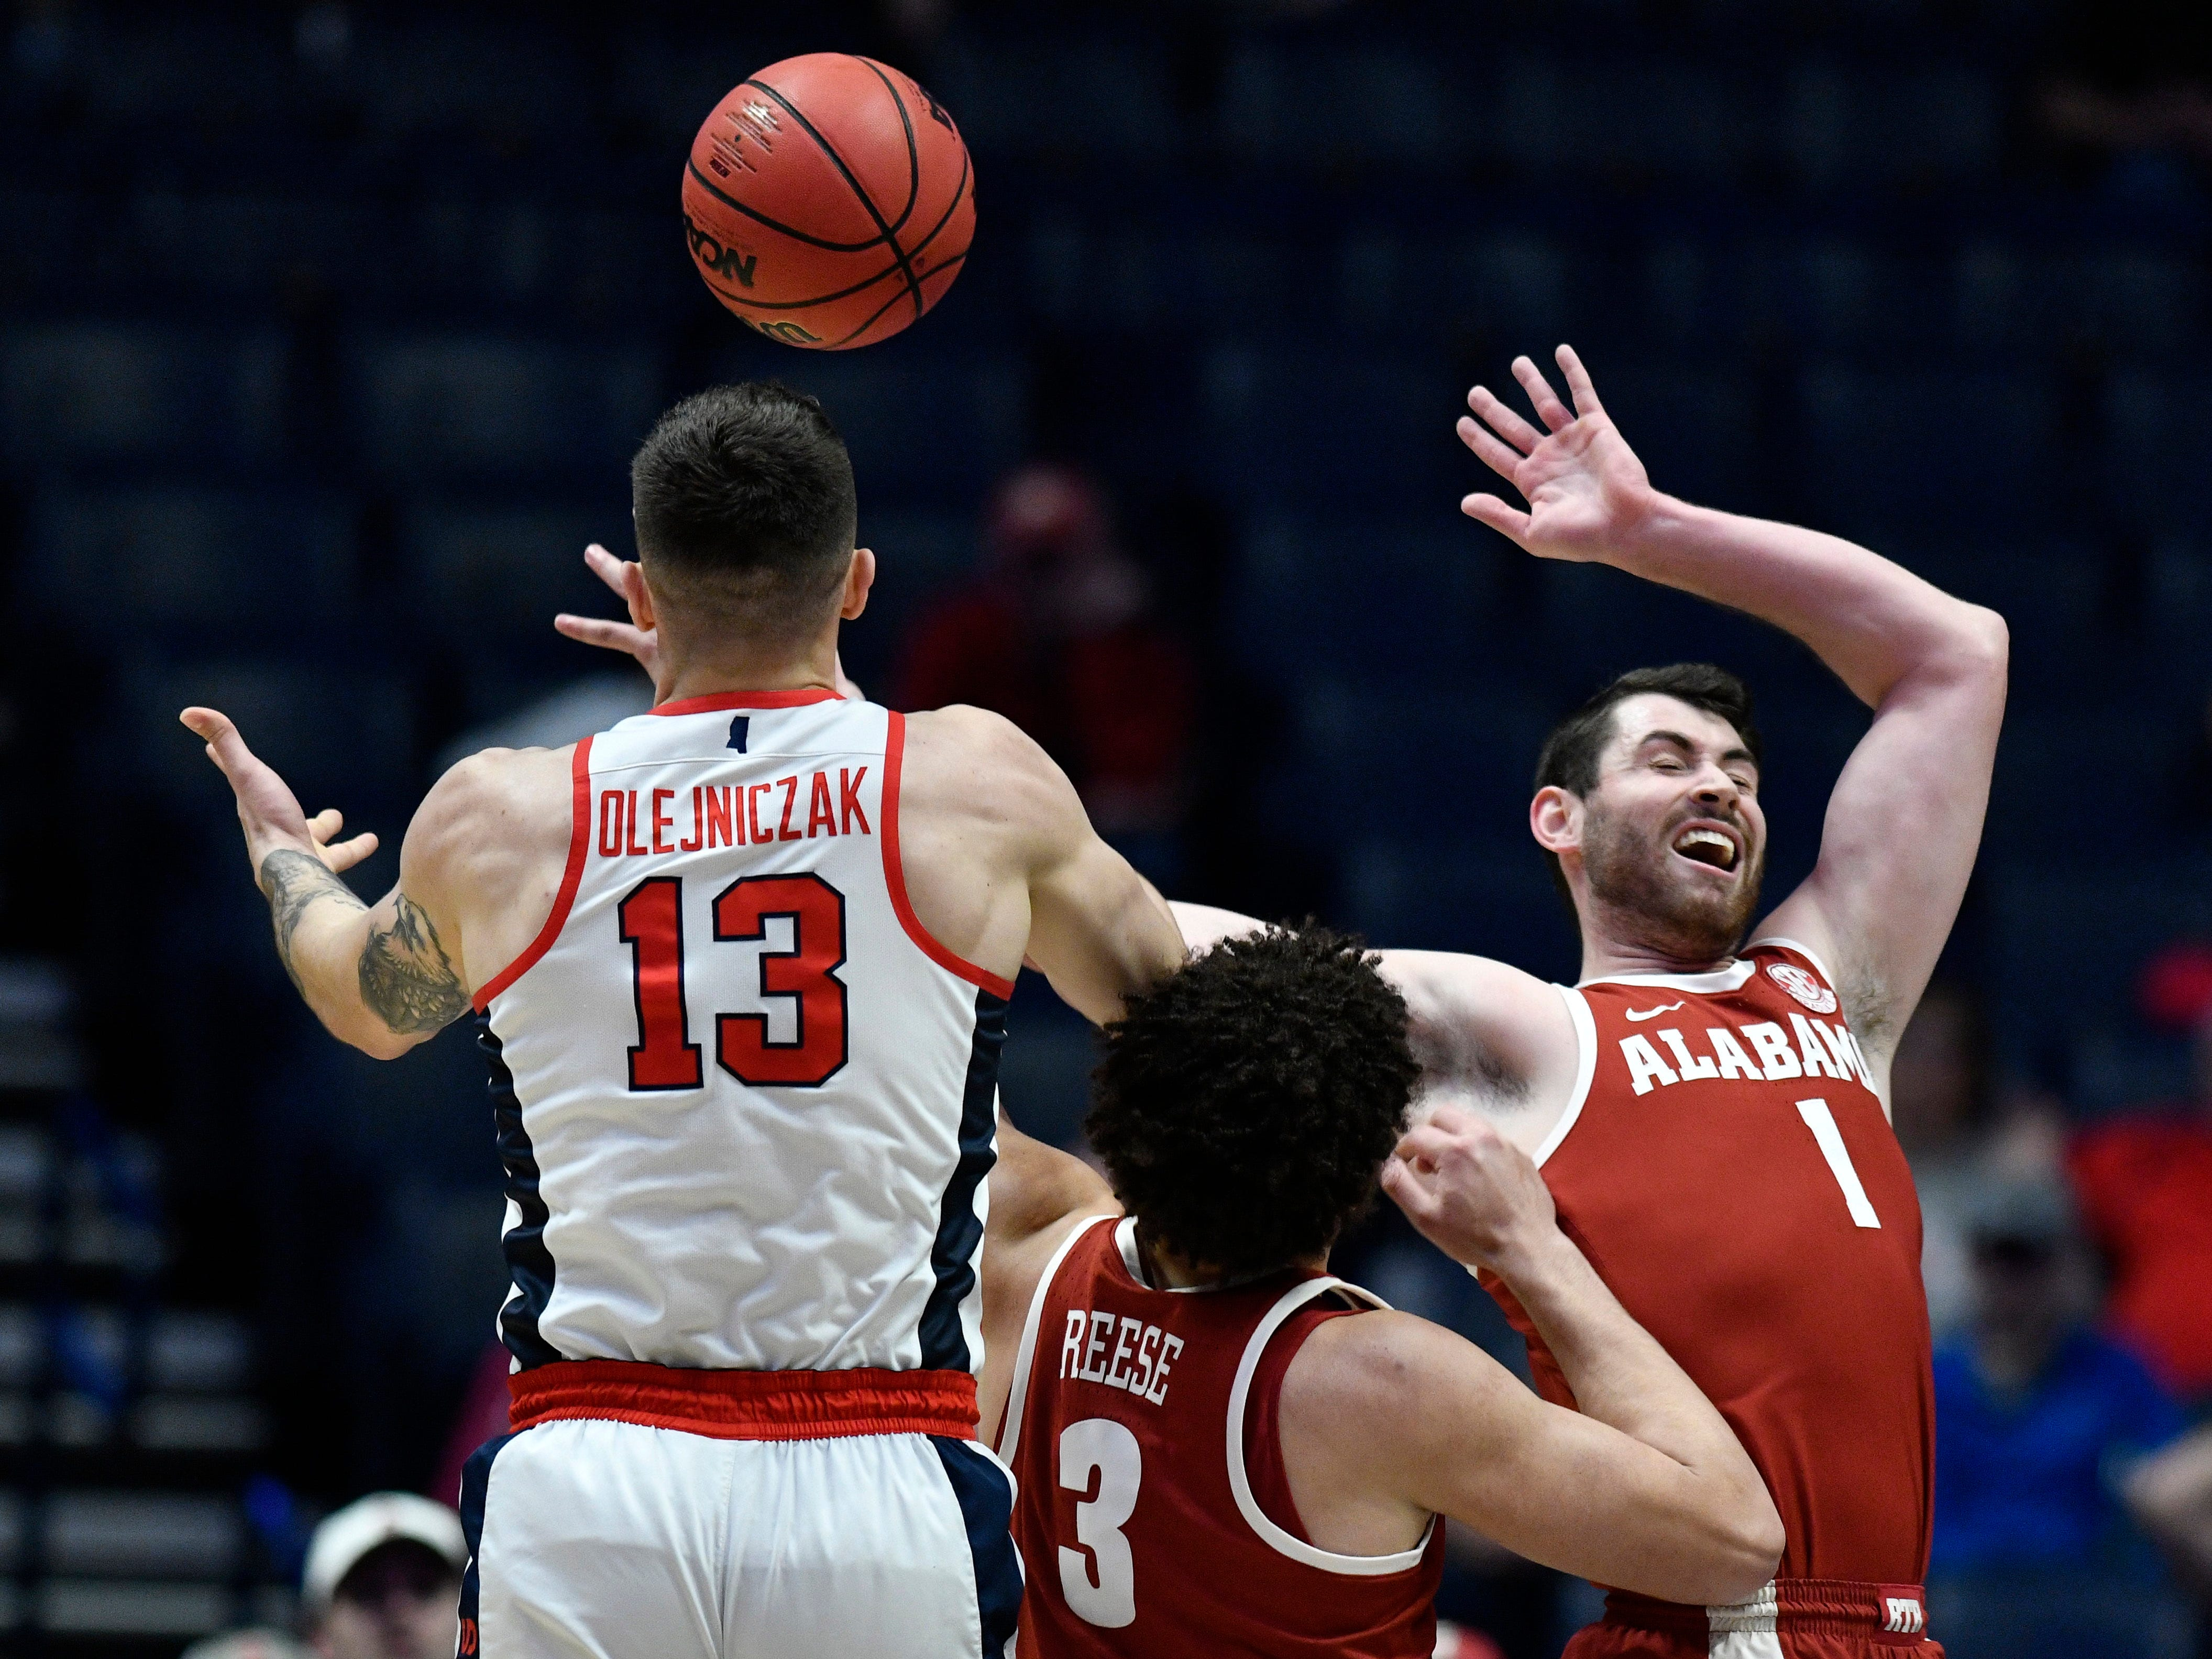 Alabama guard/forward Riley Norris (1), forward Alex Reese (3) and Ole Miss center Dominik Olejniczak (13) battle for the ball during the first half of the SEC Men's Basketball Tournament game at Bridgestone Arena in Nashville, Tenn., Thursday, March 14, 2019.